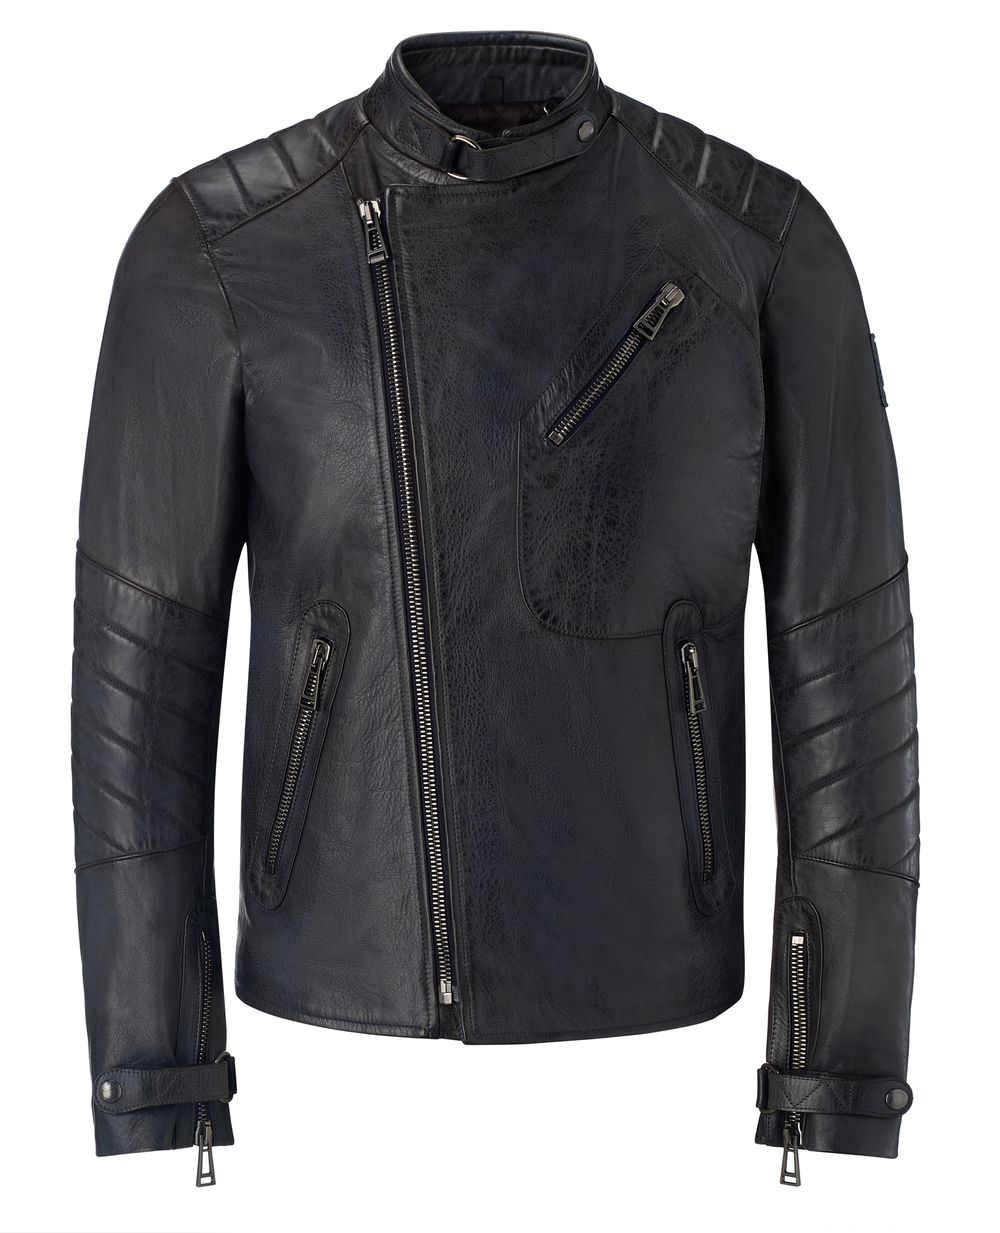 Beckham for Belstaff_Kendall Blouson_Racing Blue_1.jpg